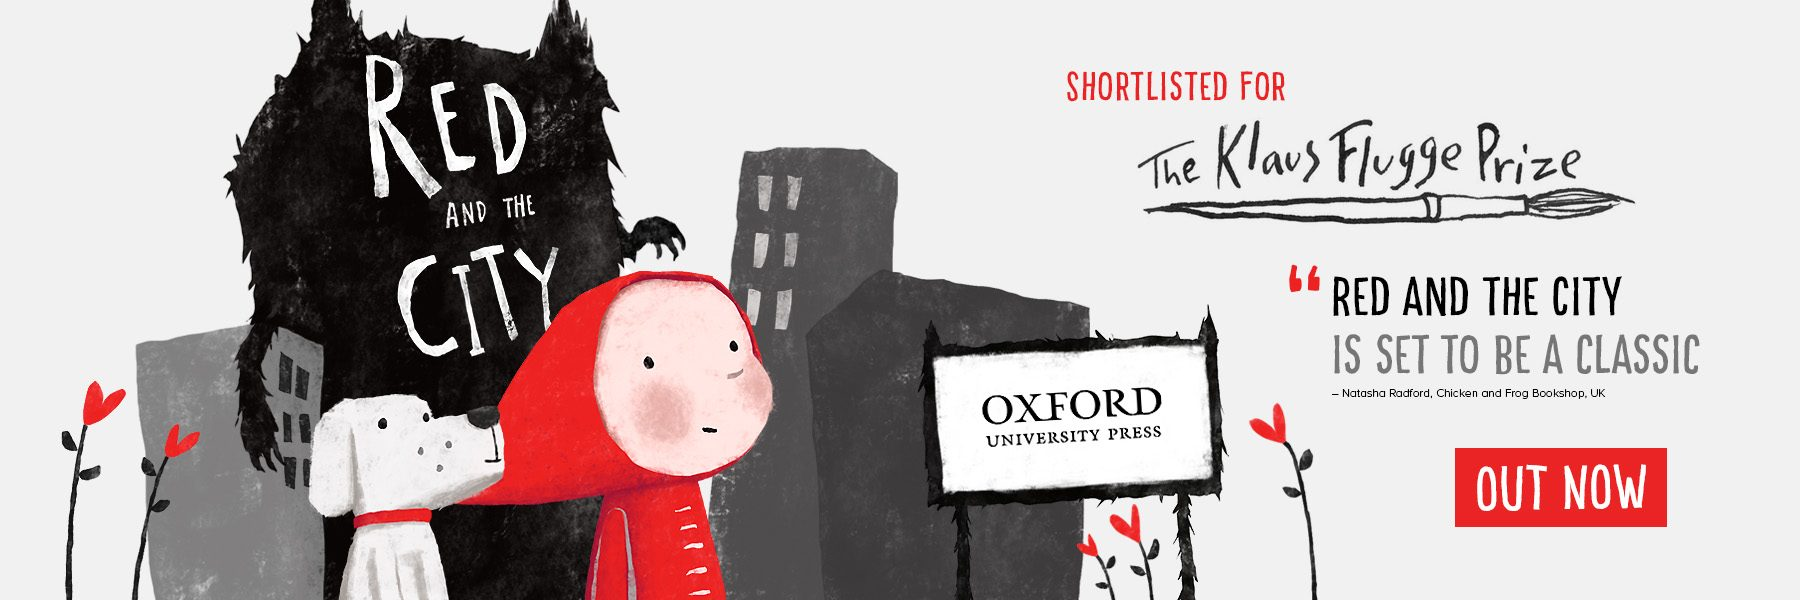 Red and the City – Shortlisted for Klaus Flugge Prize